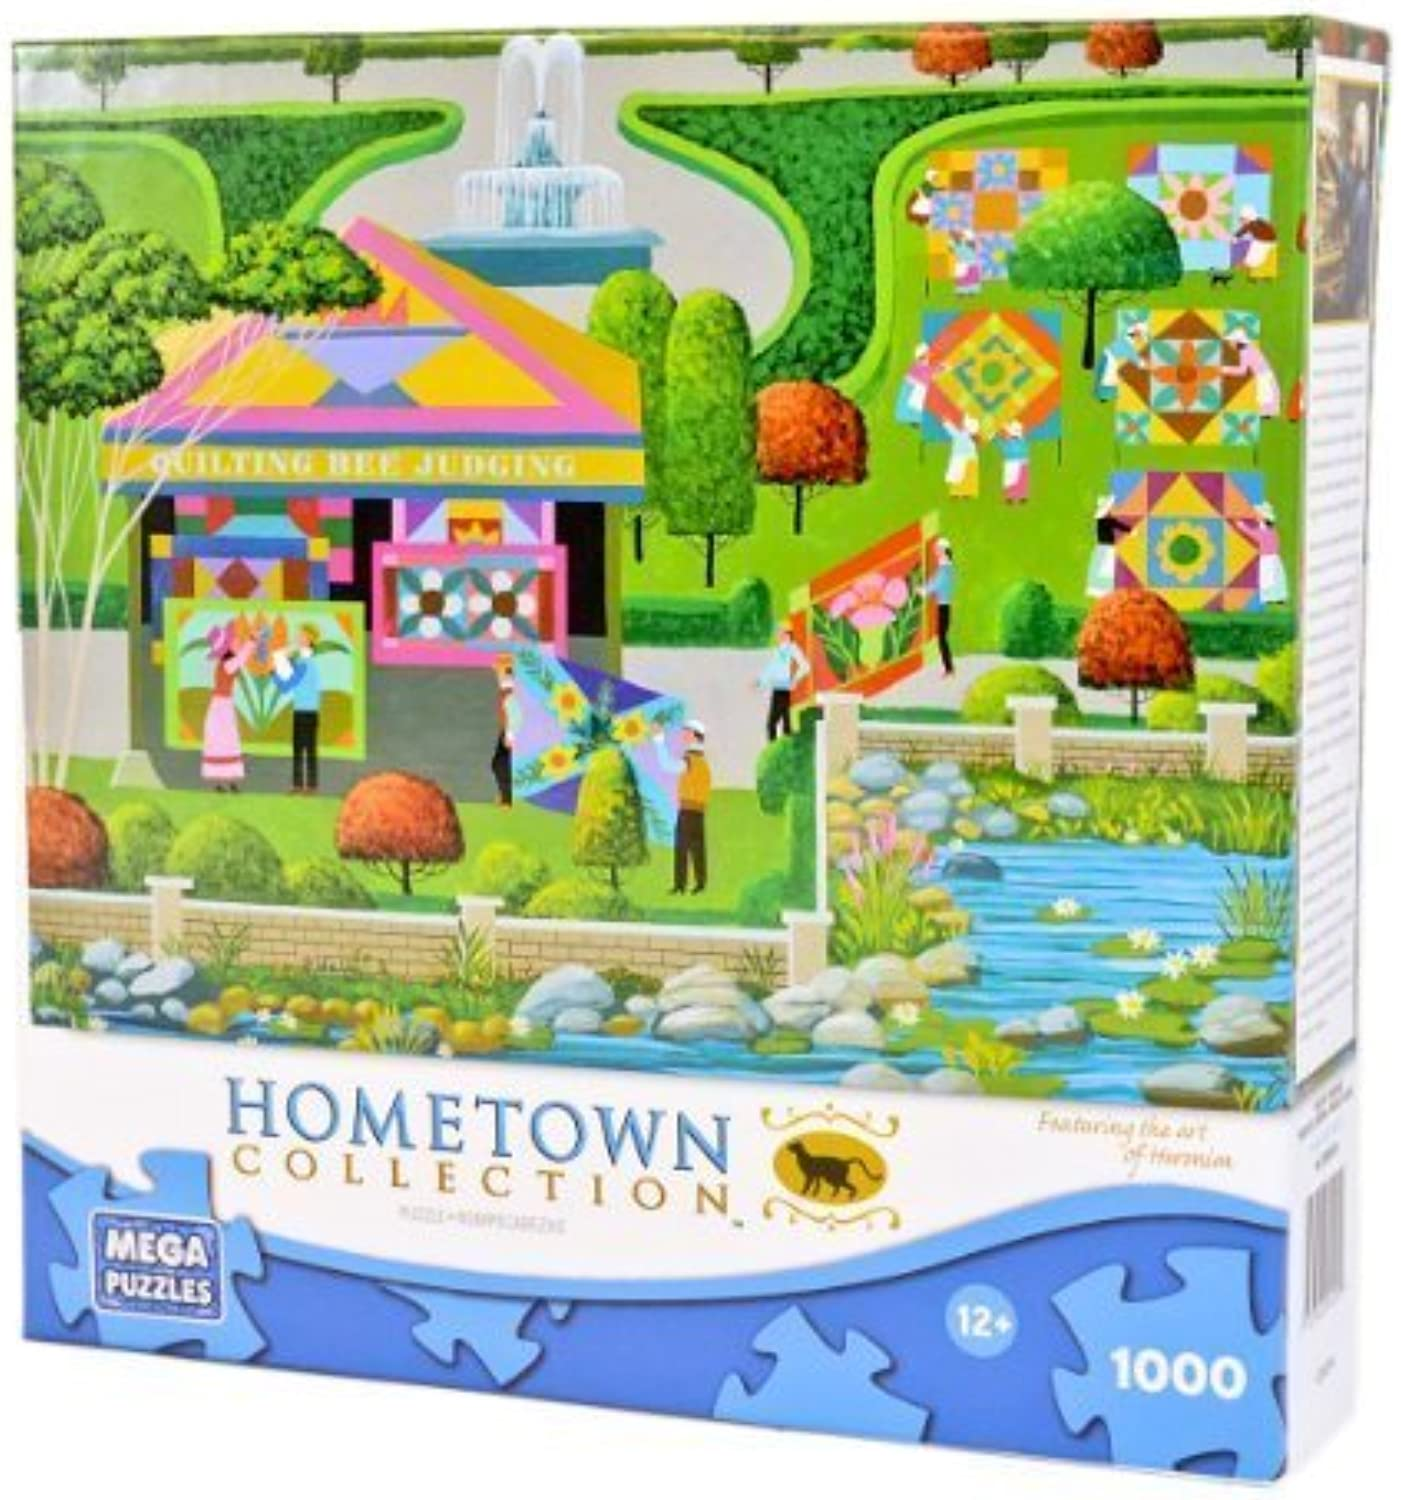 estilo clásico Hometown Collection- Quilting Bee by Heronim by by by Hometown  solo para ti